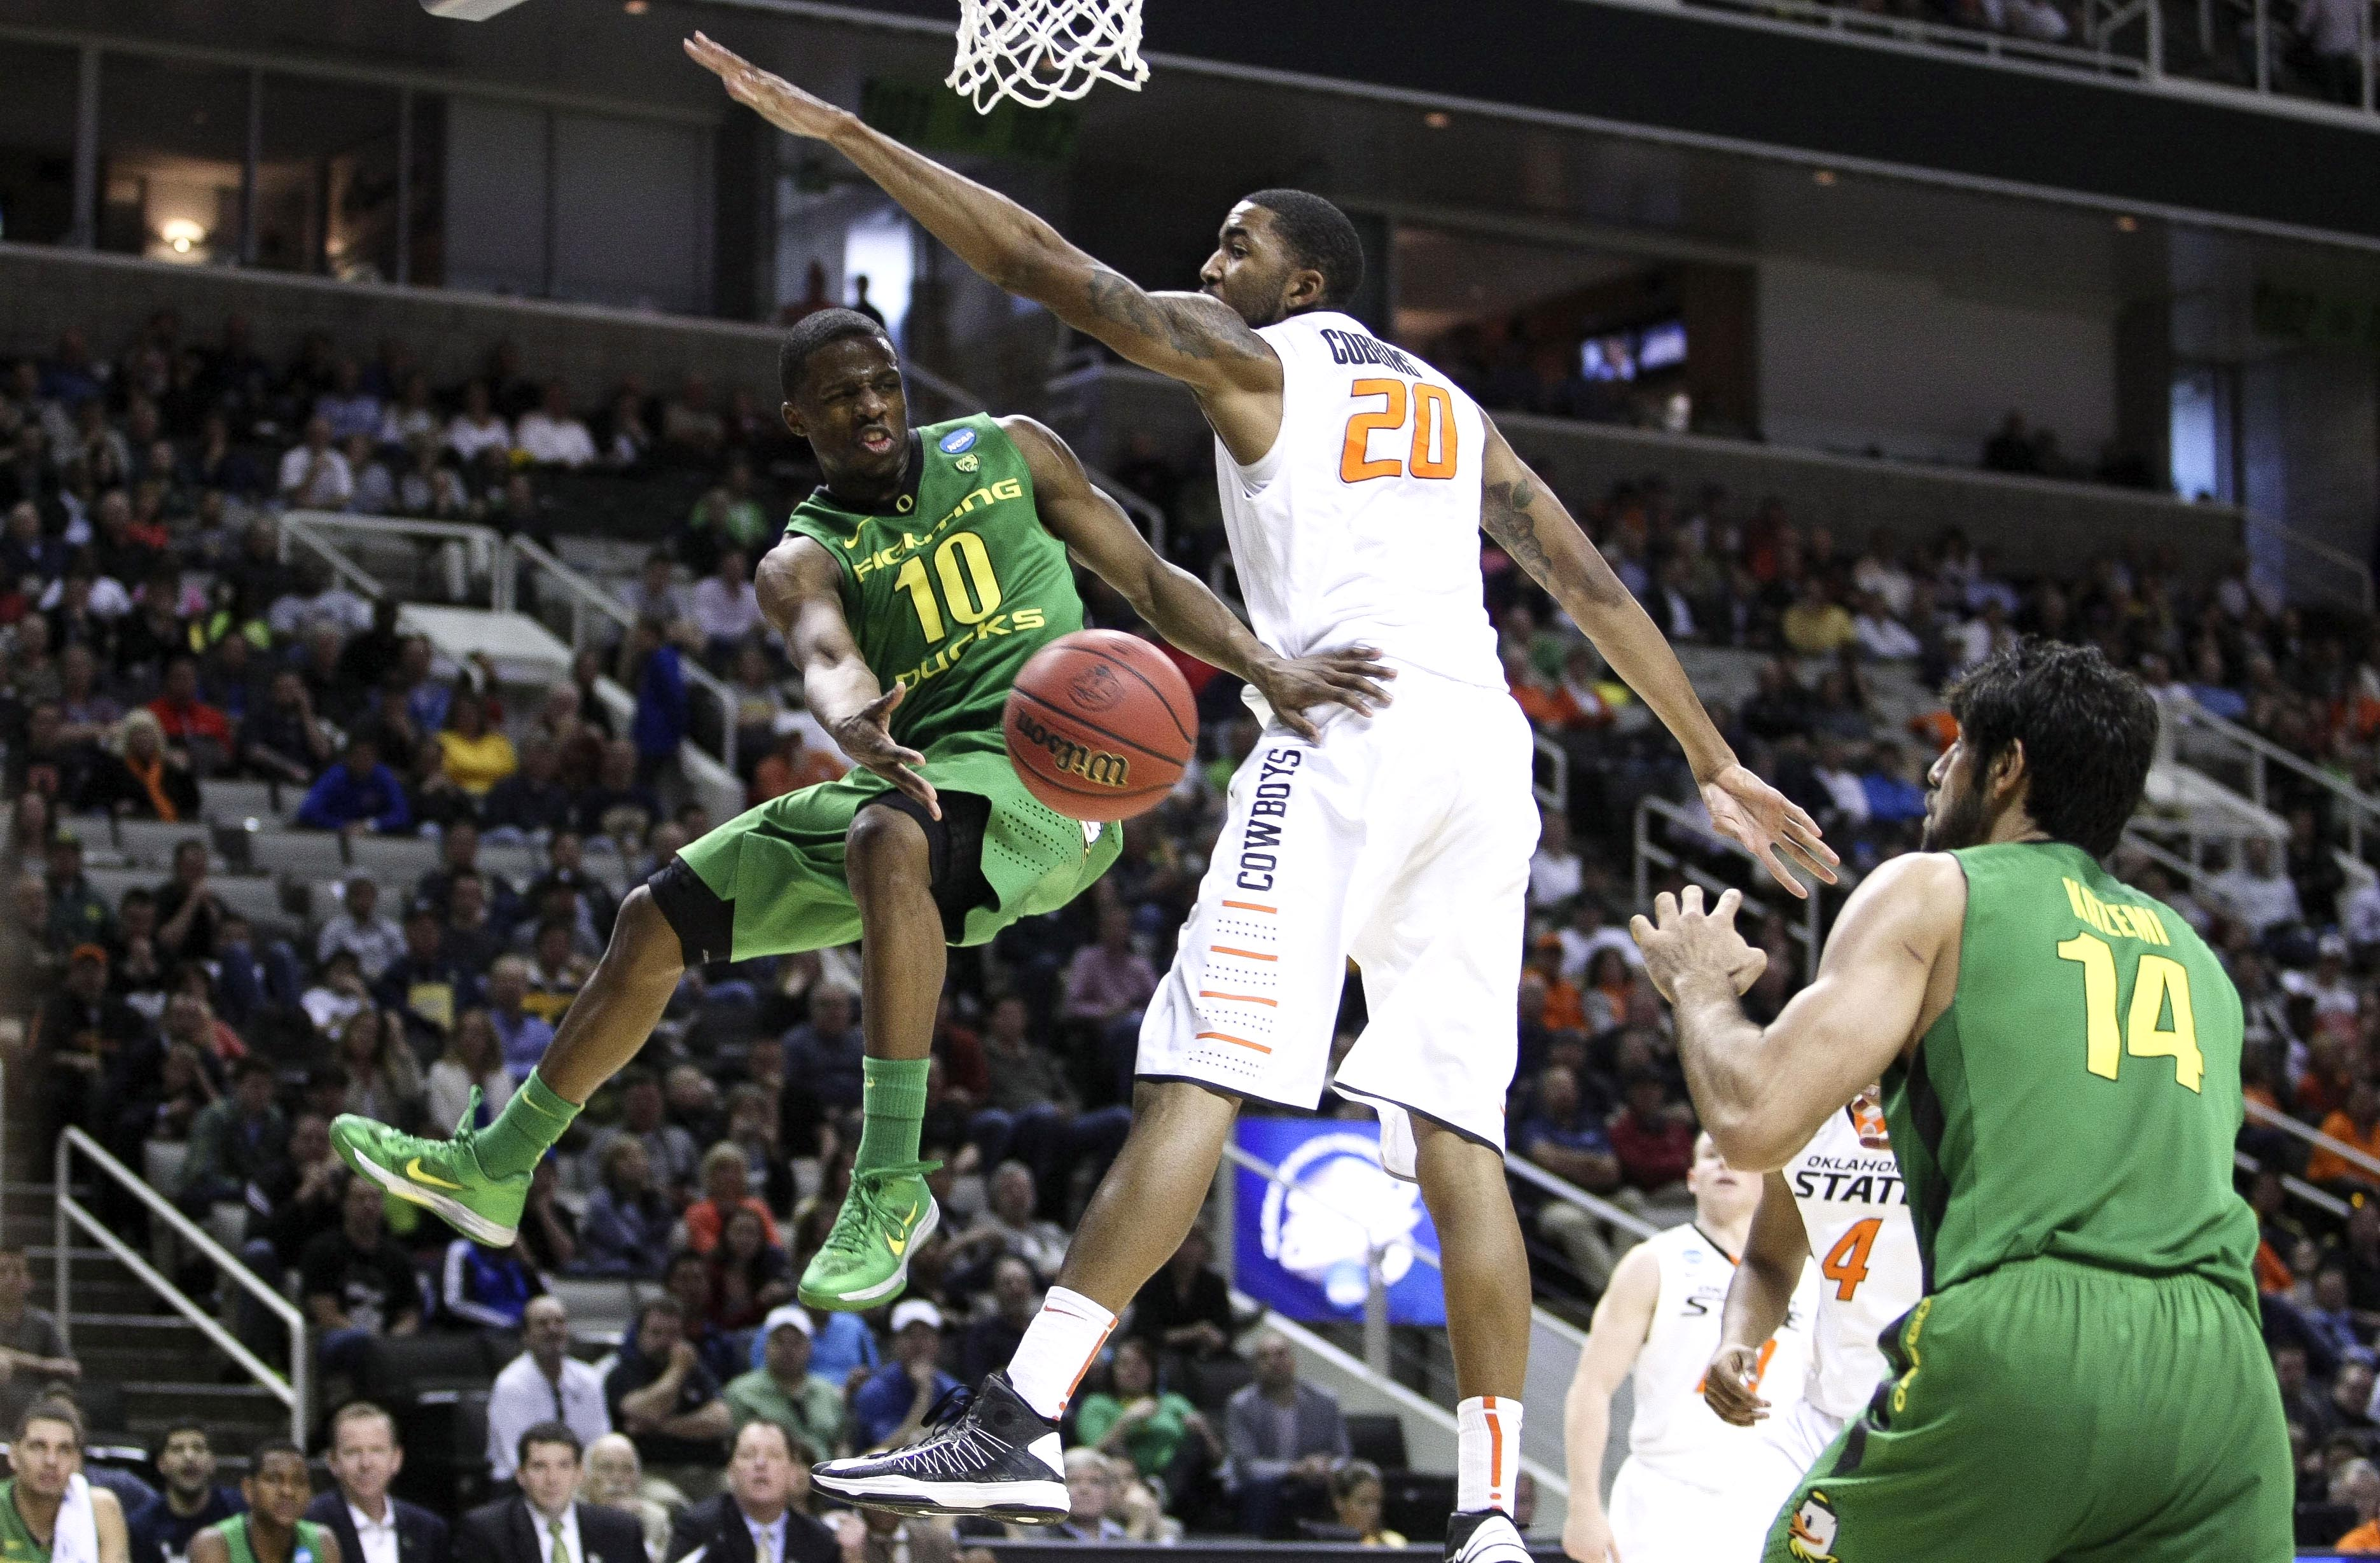 Oregon's Johnathan Loyd passes the ball to Arsalan Kazemi vs.Oklahoma State's Michael Cobbins. (USA TODAY Sports)